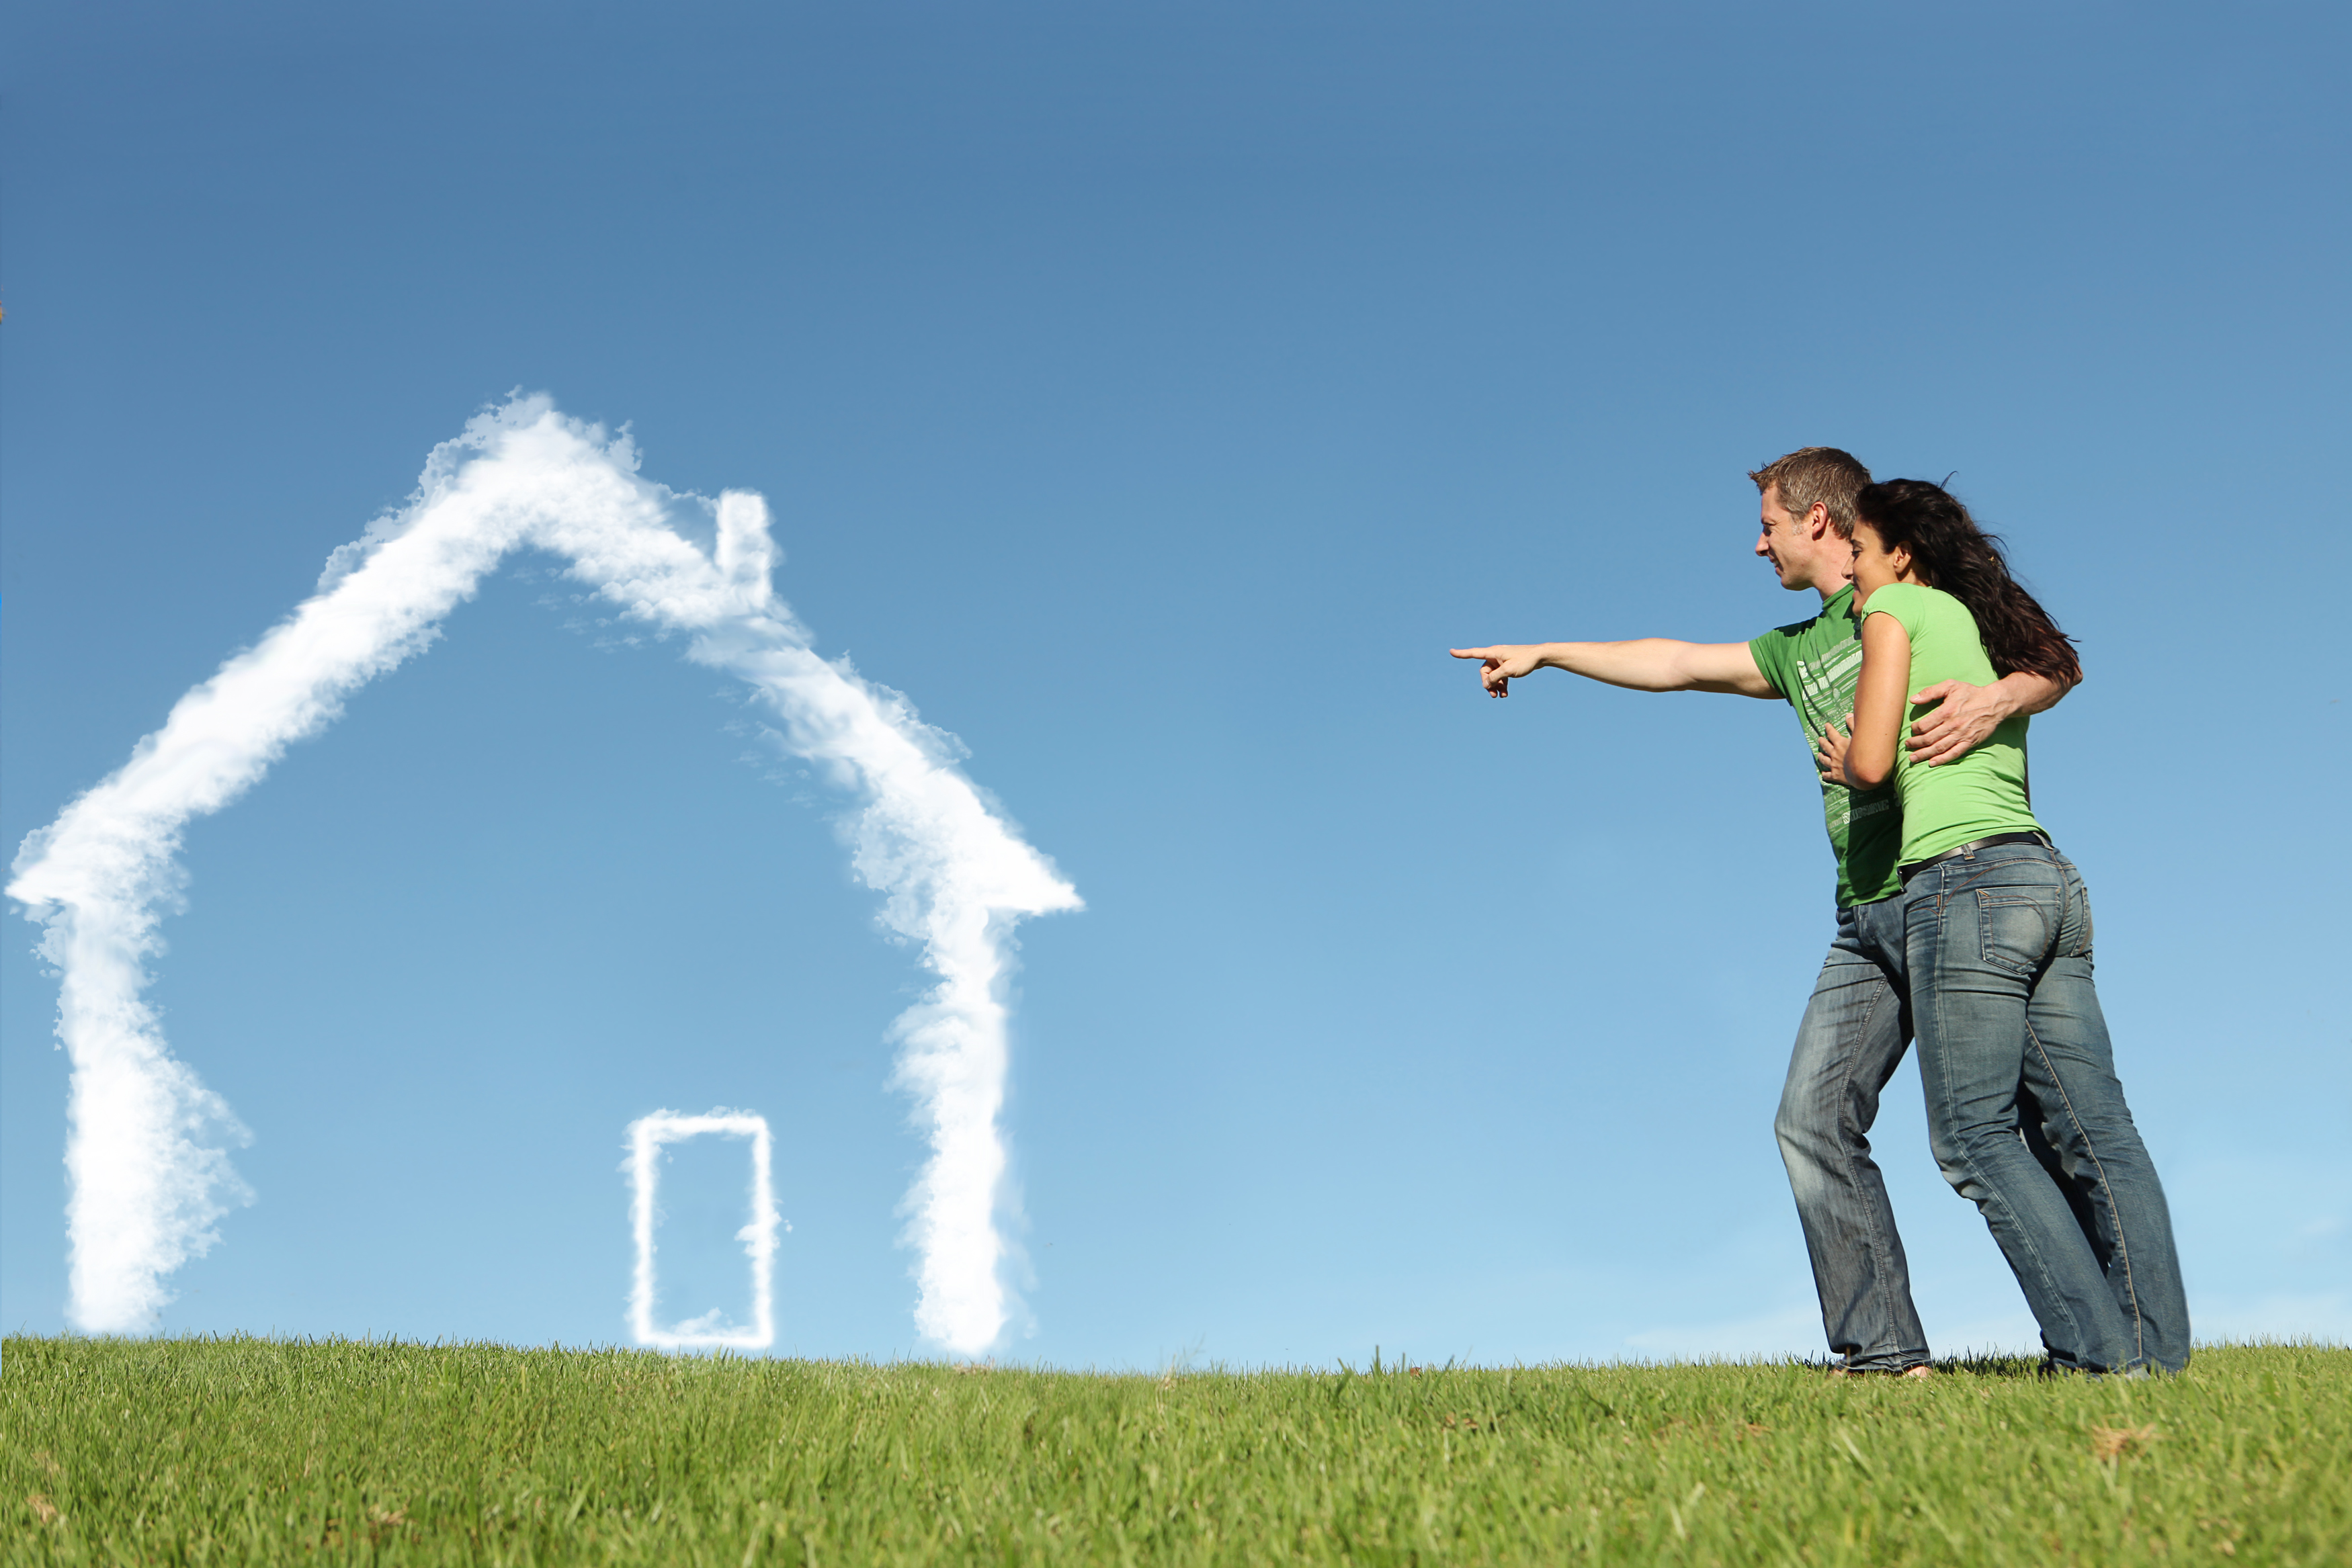 Searching for your NJ dream home? Follow these tips!